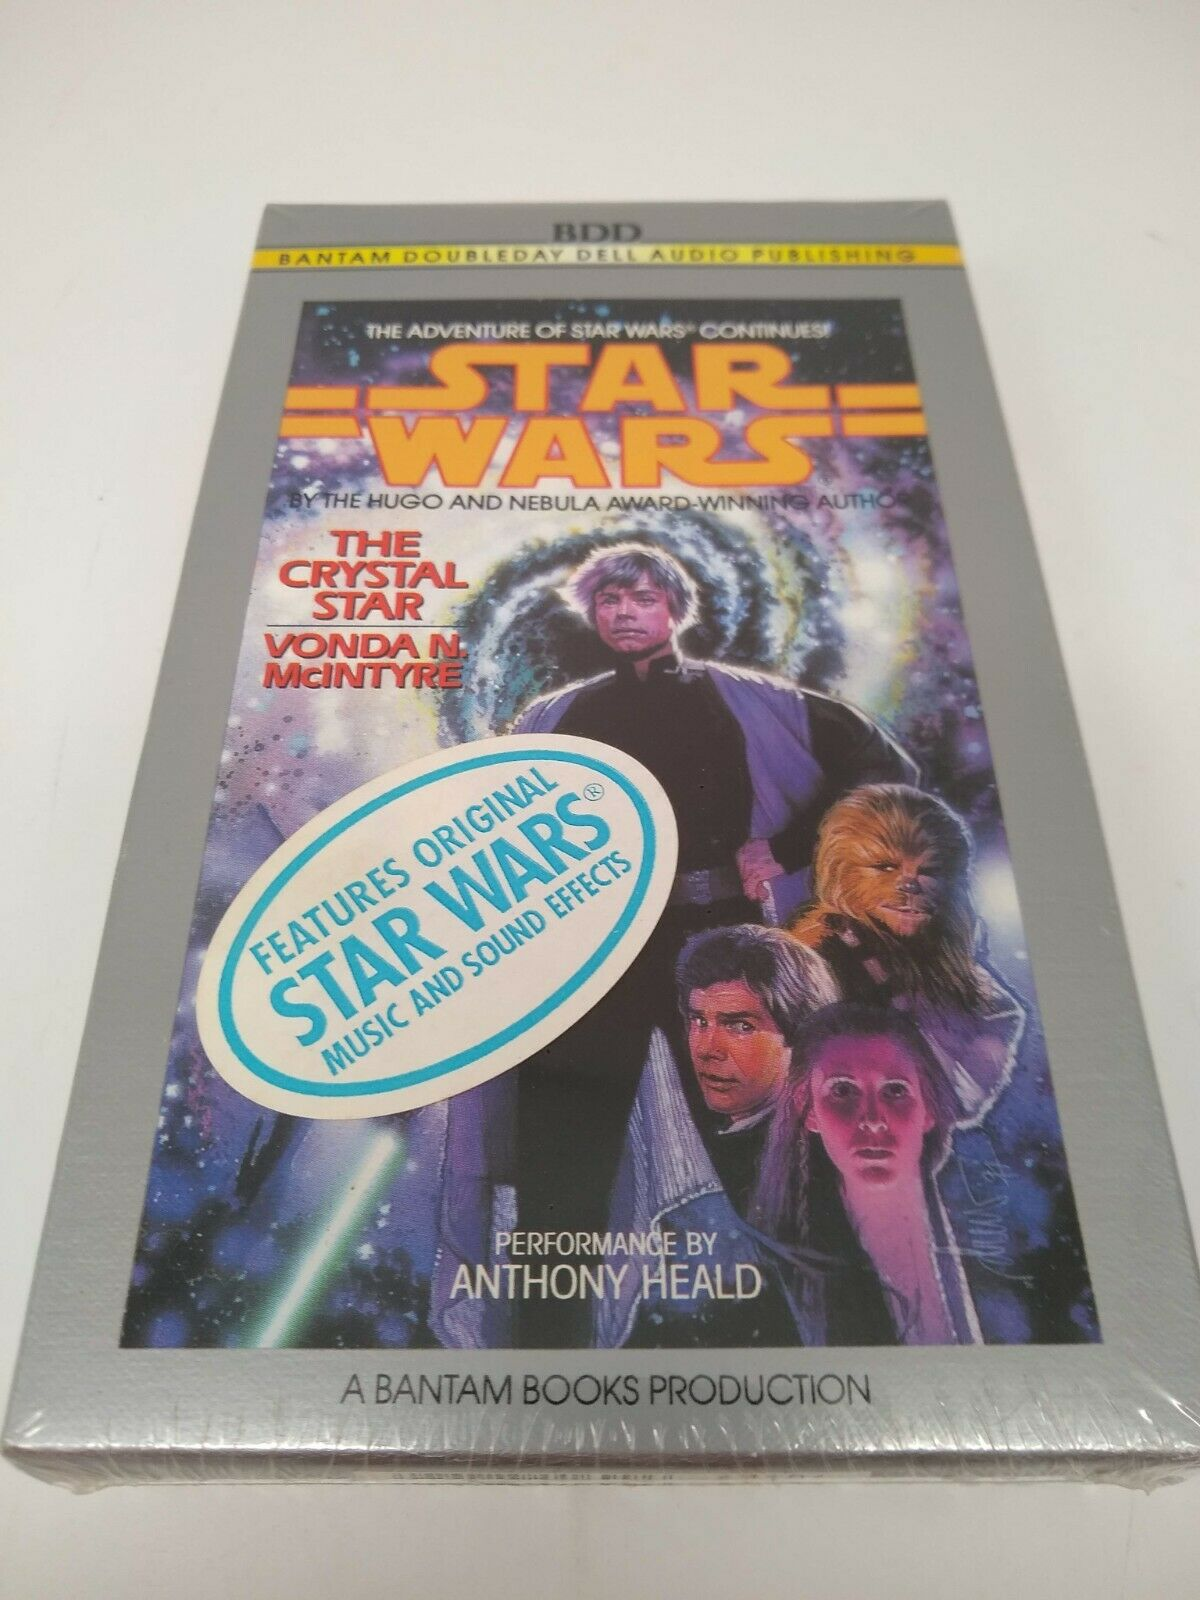 Star Wars Cassette Tape Audio Book The Crystal Star - Factory Sealed